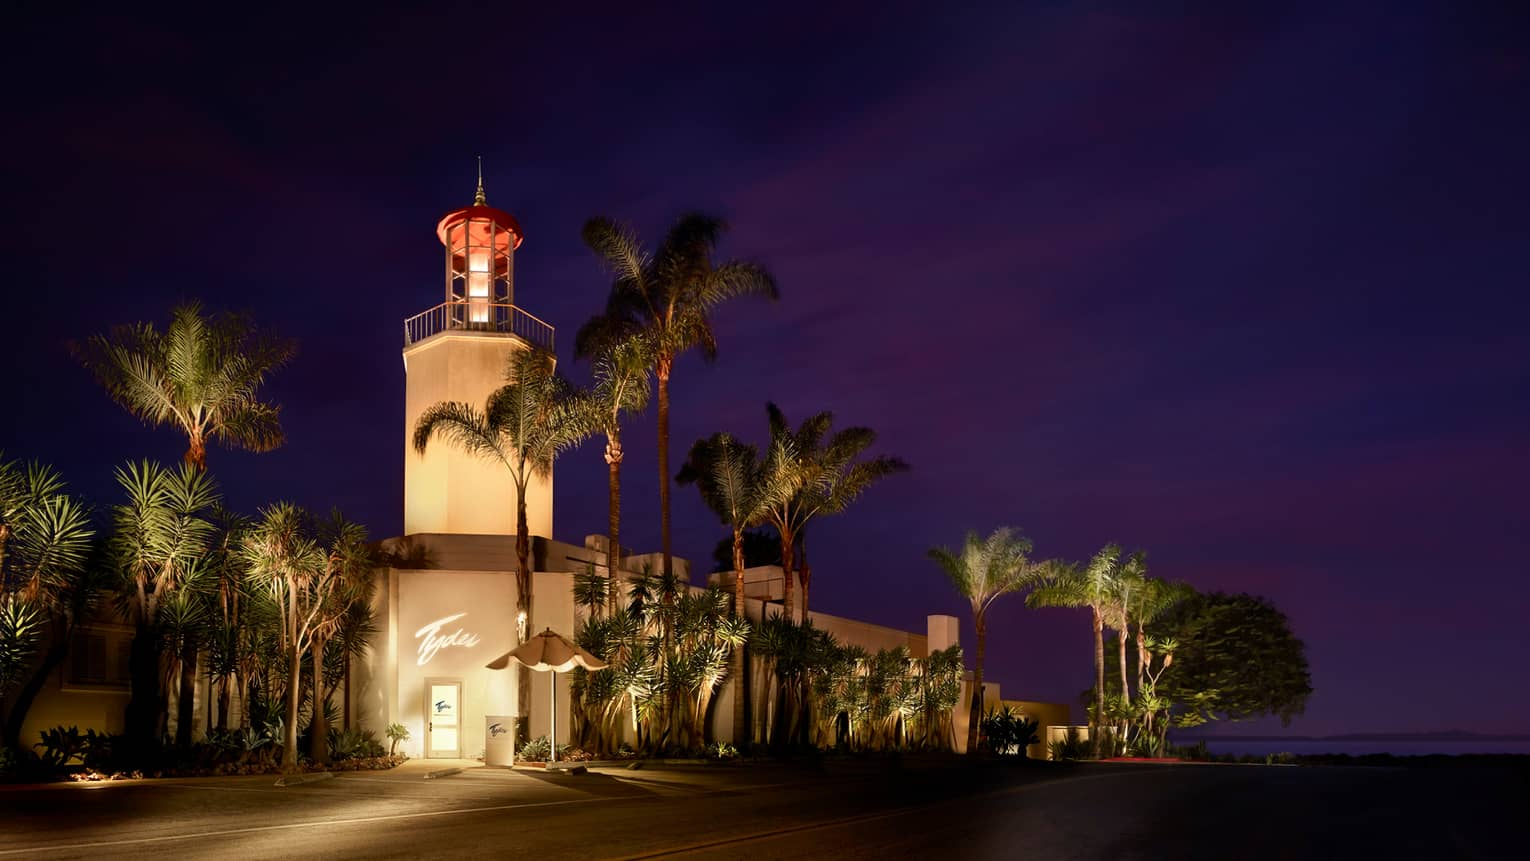 Tydes exterior at night with glowing tower, tall palm trees